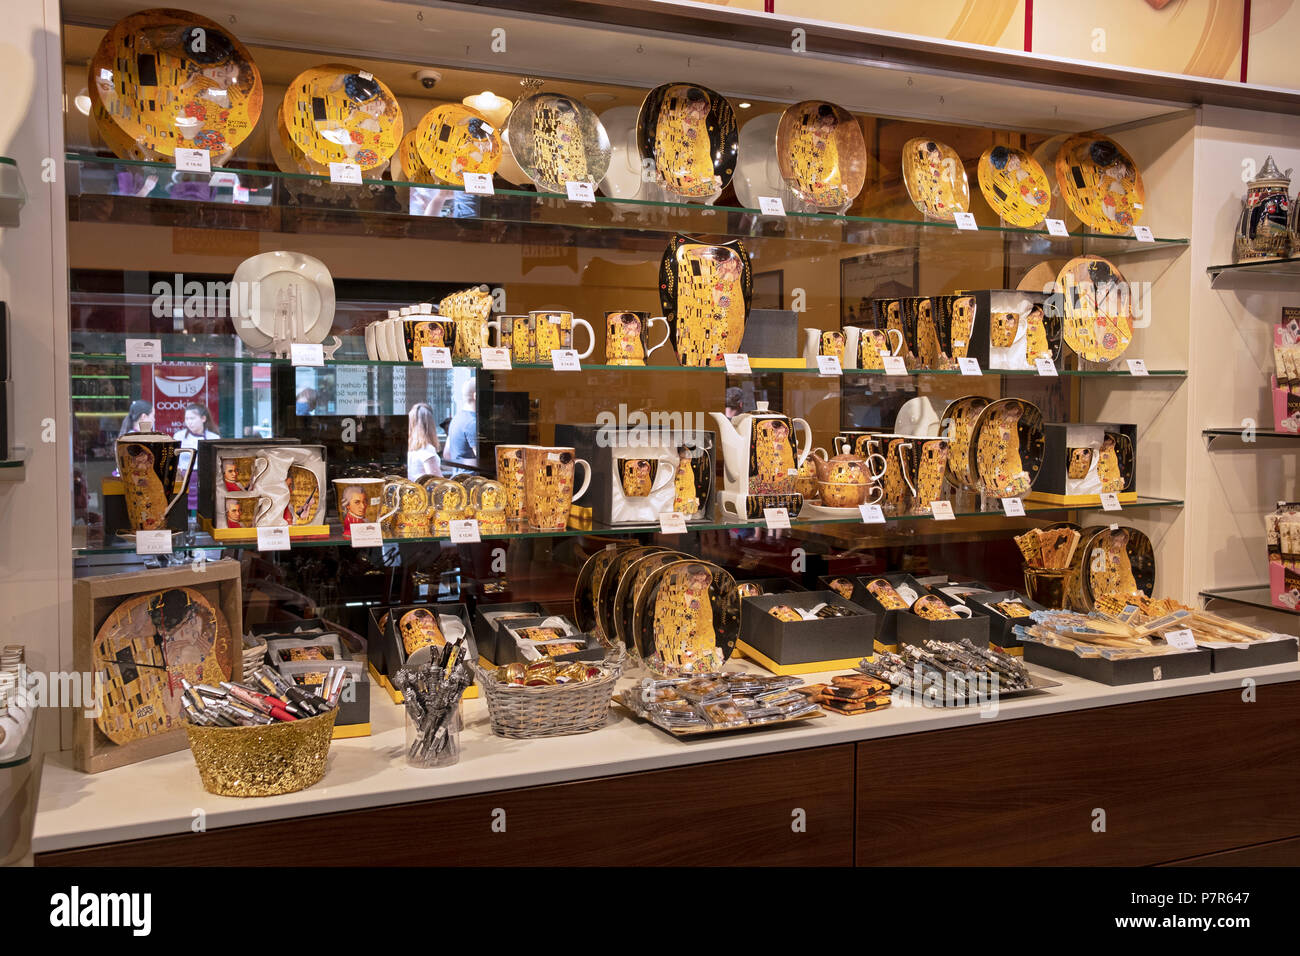 A tourist oriented store at the Vienna Market in Austria selling Gustav Klimt gifts including plates, mugs and other tchotchkes.